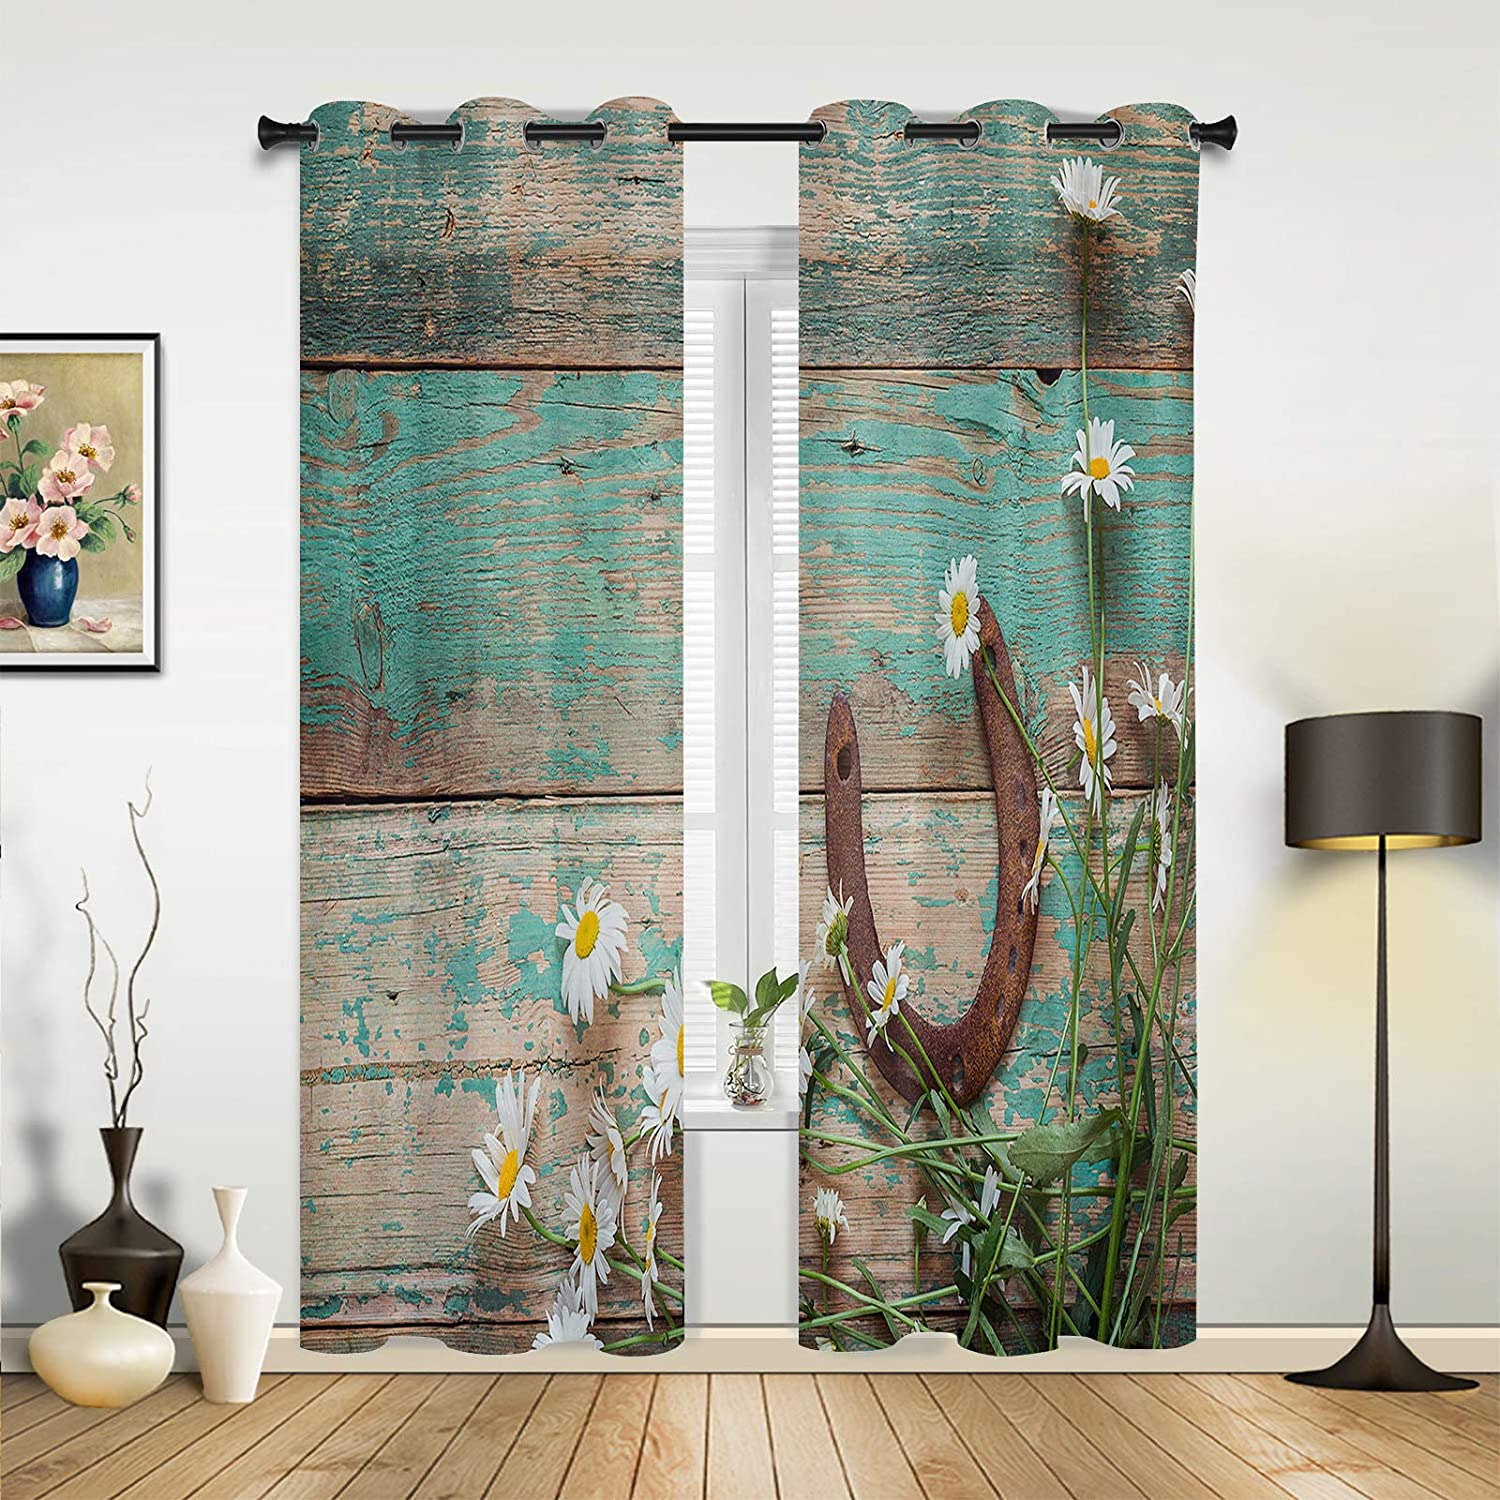 Max 79% OFF Window Sheer Curtains for Bedroom Dealing full price reduction Beautiful Spring Living F Room